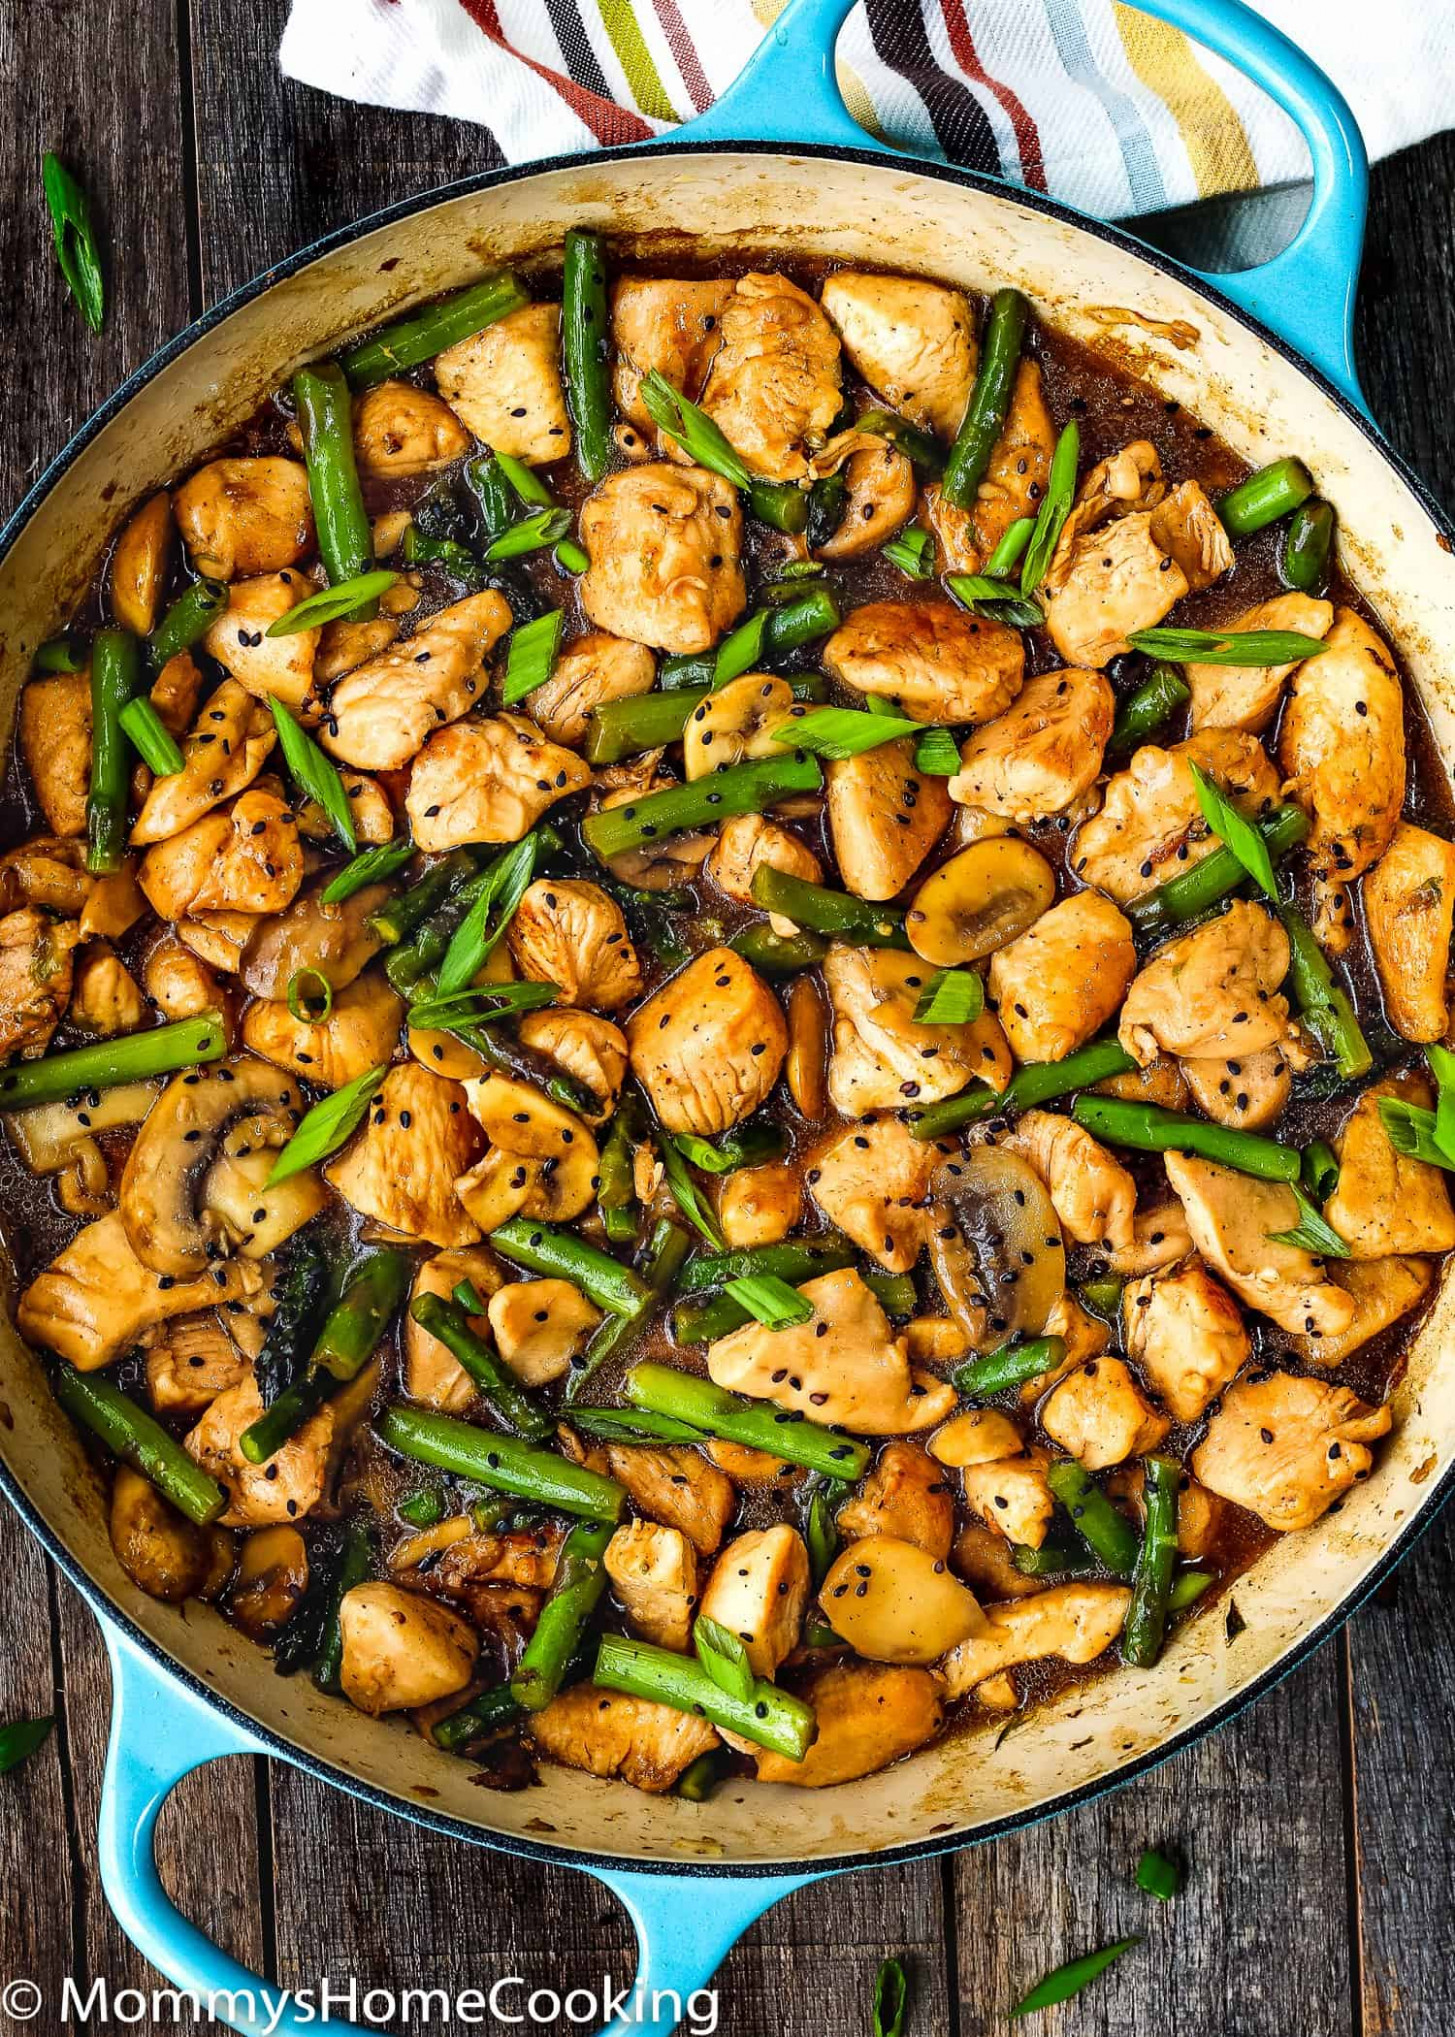 Easy Healthy Chicken And Asparagus Skillet - Chicken Recipes Easy To Cook